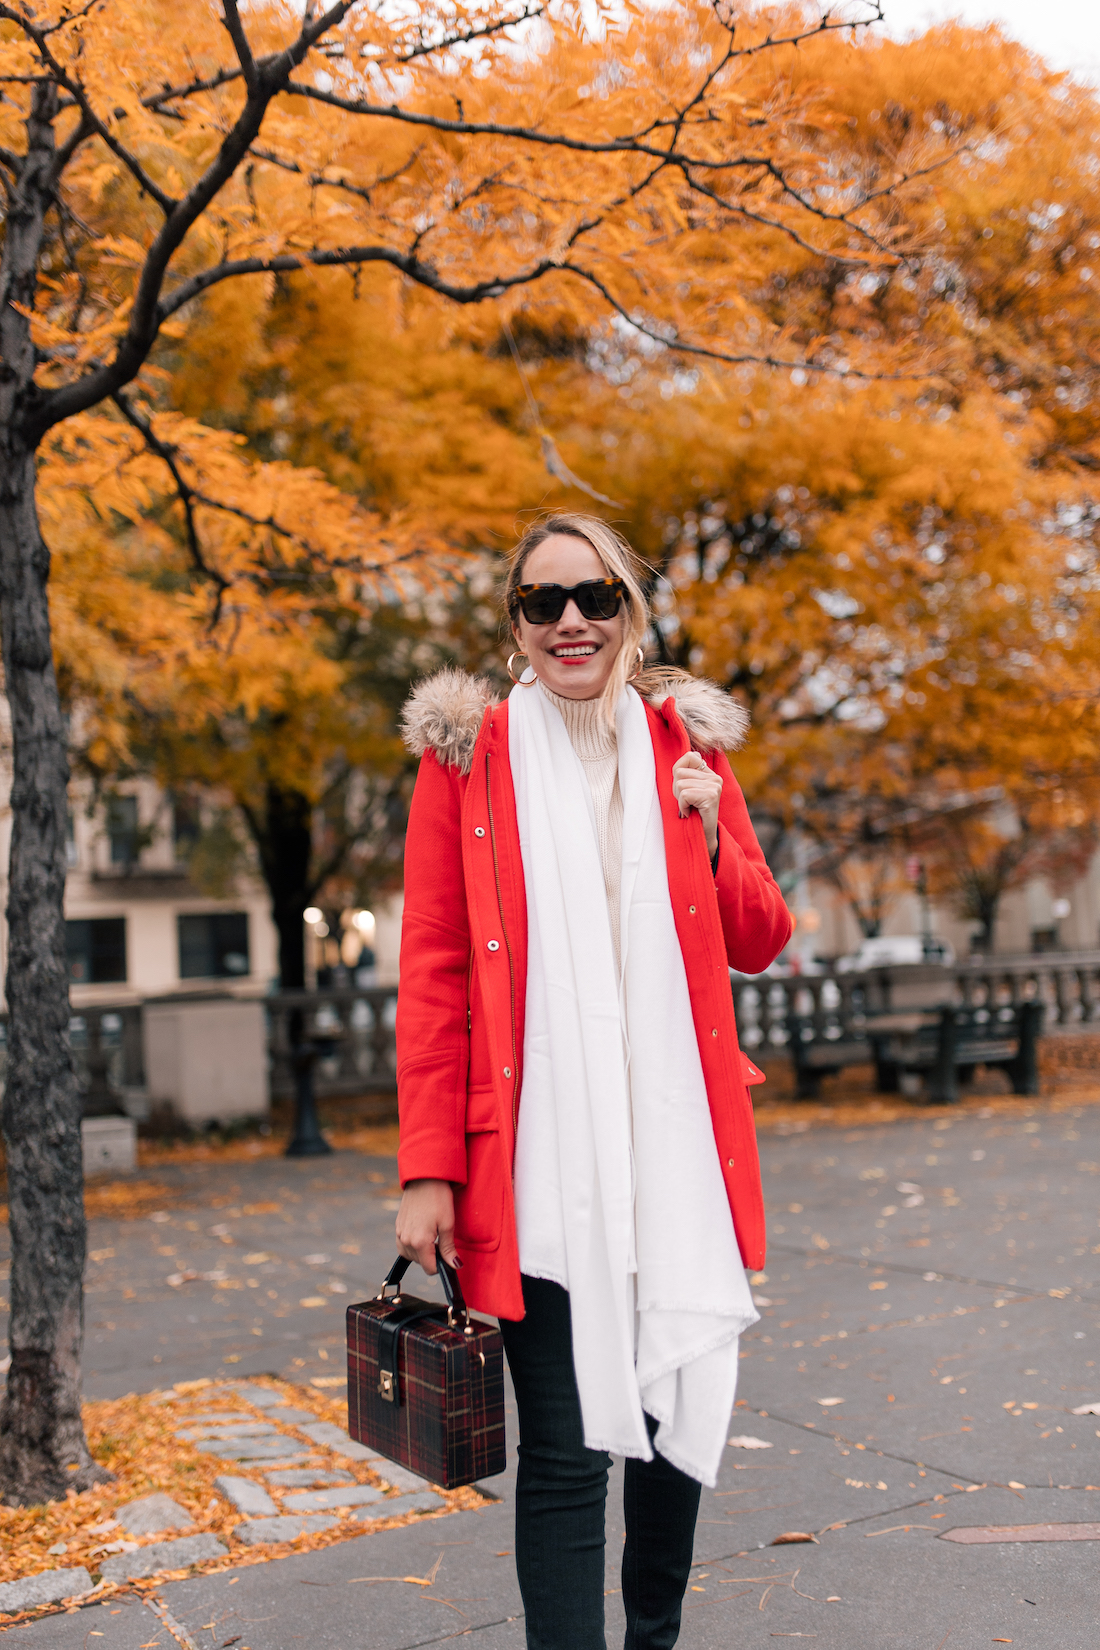 Outfit Details:J.Crew Chateau Parka (also here, finally ON SALE!) // Paige Jeans // Heidi Wynn Cashmere Wrap (20% off with code HOLIDAY20)// Zara Sweater // Celine Sunglasses // BaubleBar Mini Penelope Hoop Earrings(currently on sale!) // Patricia Nash Bag